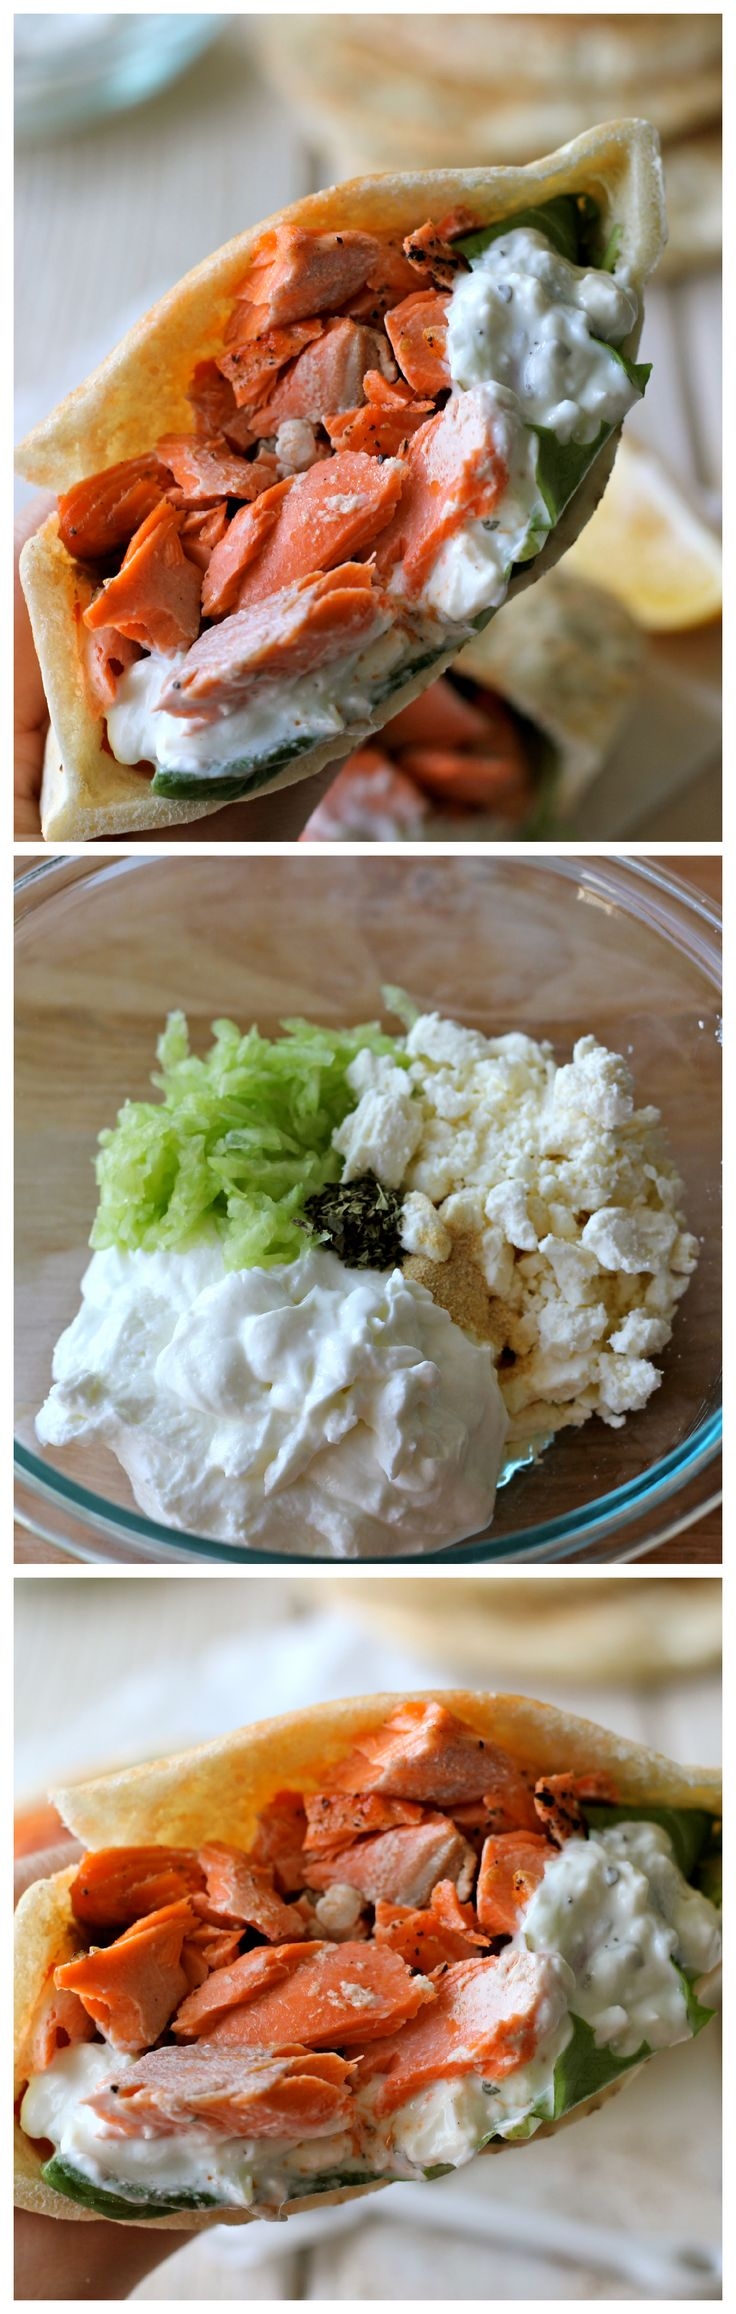 Broiled Salmon Gyros with Cucumber Feta Yogurt Dip - A hearty, healthy gyro with a homemade yogurt dip!